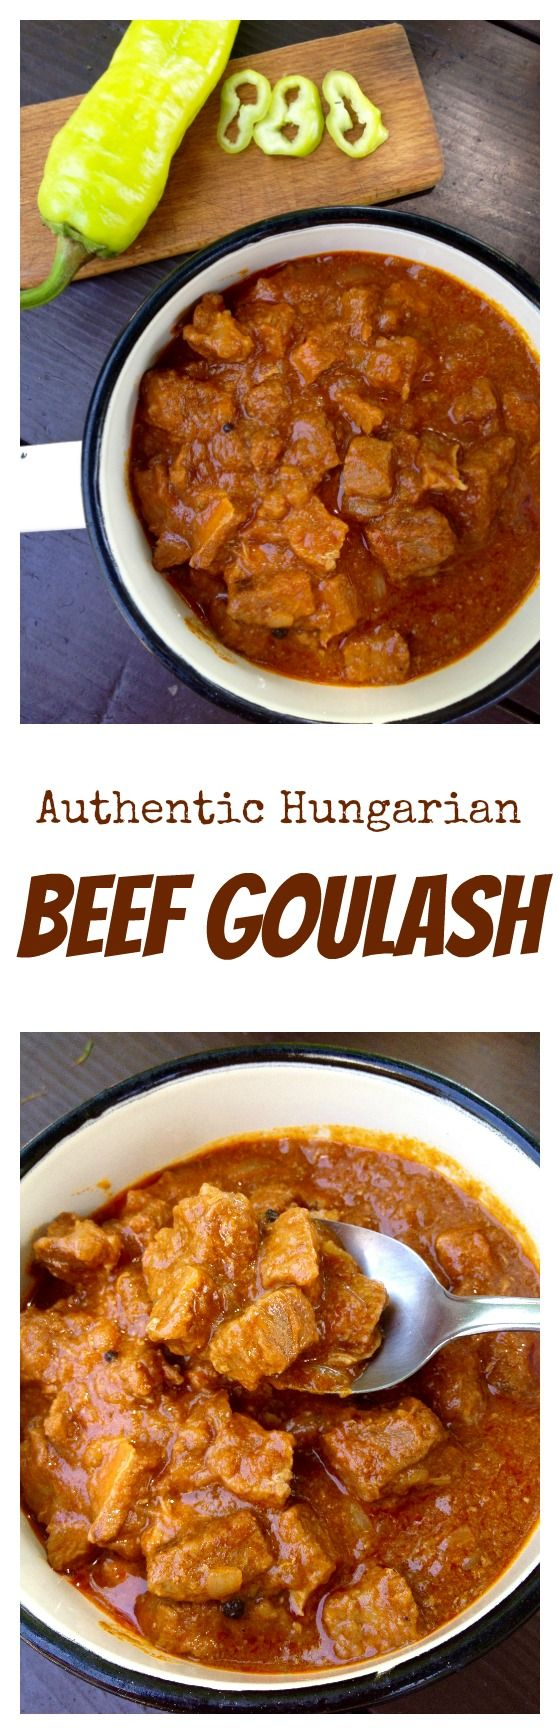 Hungarian beef goulash is a thick and hearty meat stew, served with nokedli noodles (spaetzle) and pickles. Click for the recipe.